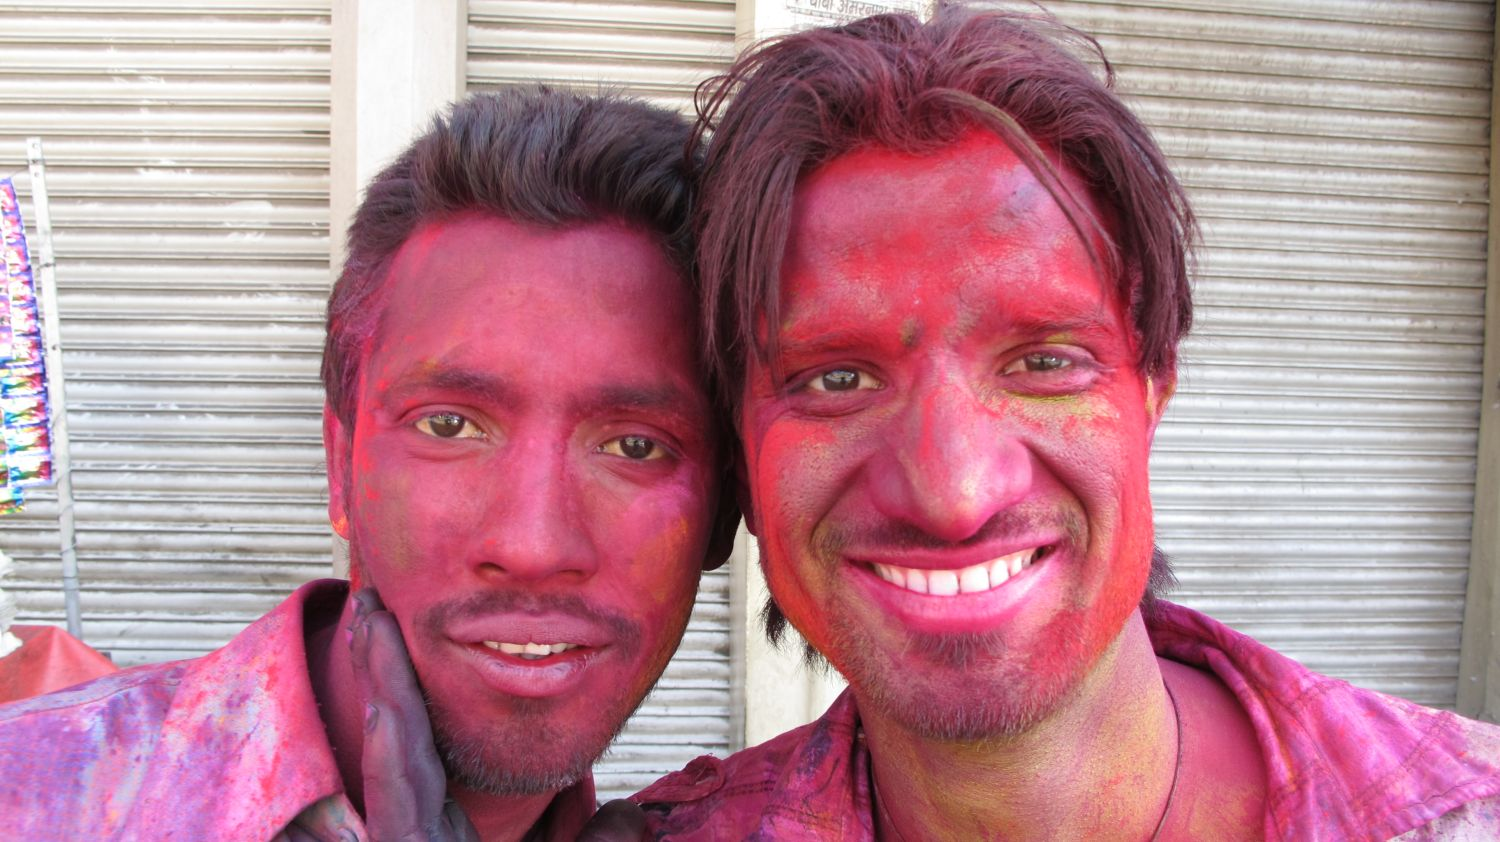 Jaipur | The Holi 12 | Feast of colors | Indian men celebrating the Holi | ©sandrine cohen